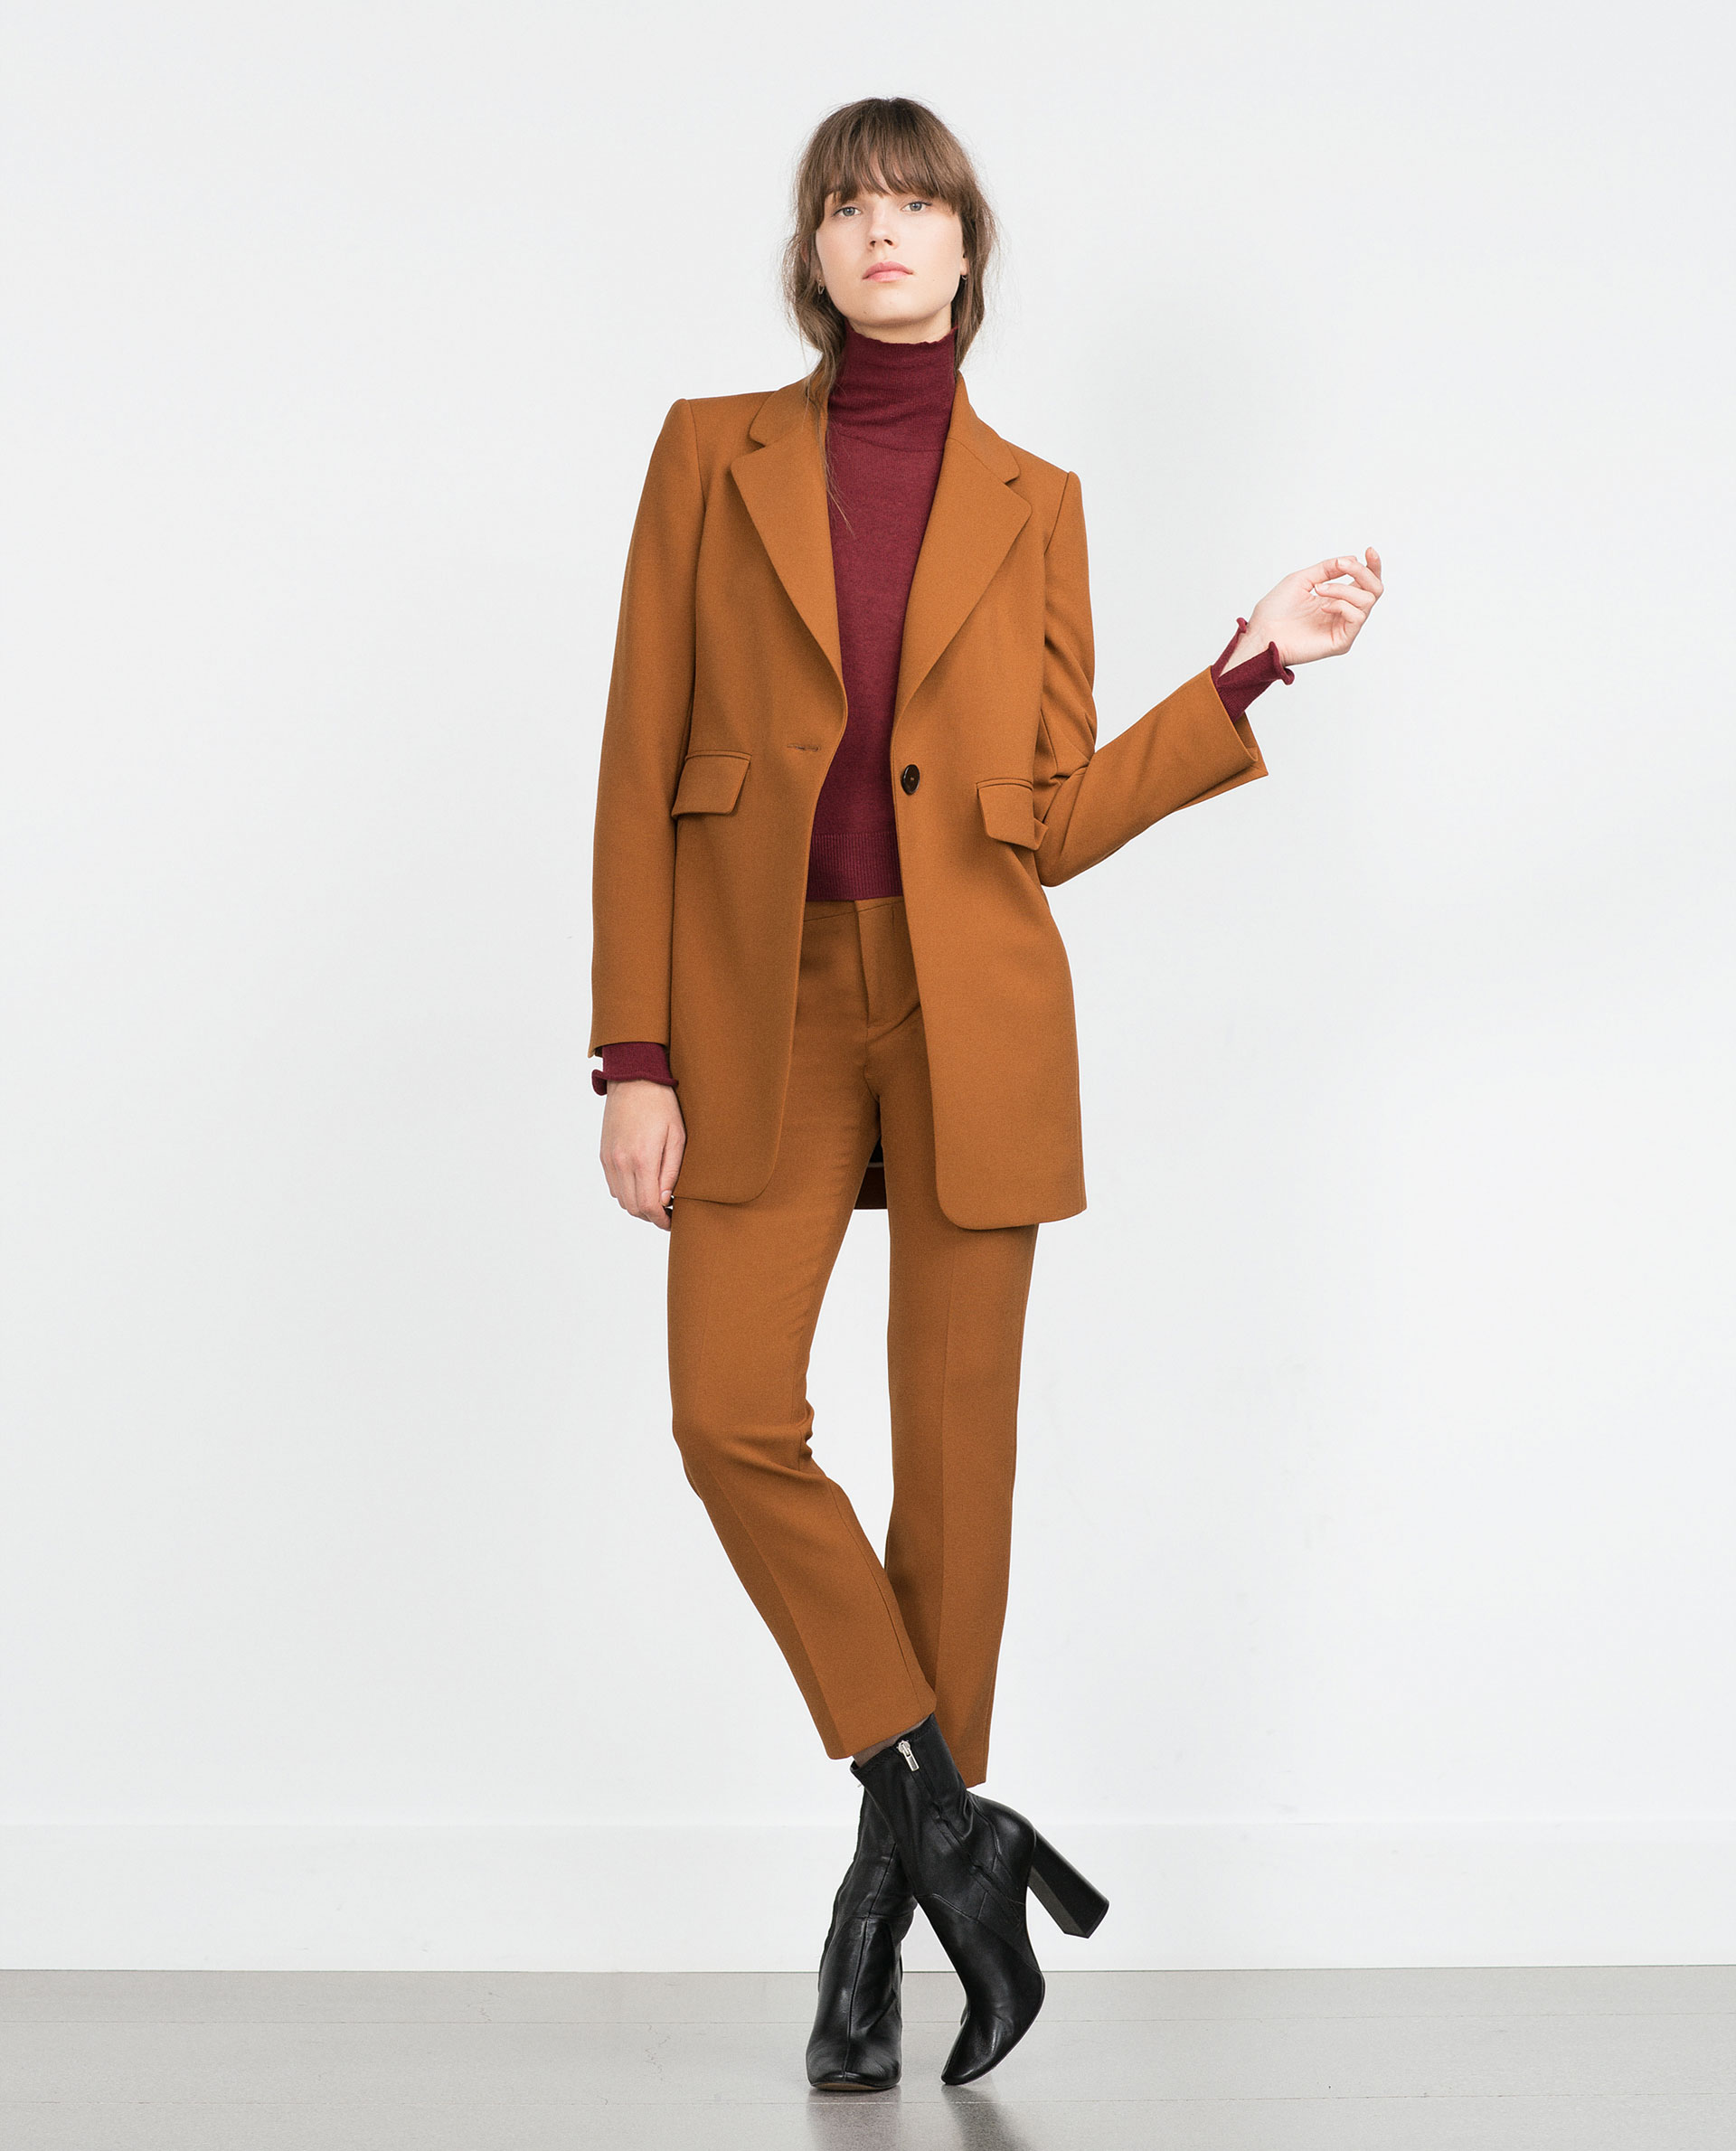 zara-pants-suit